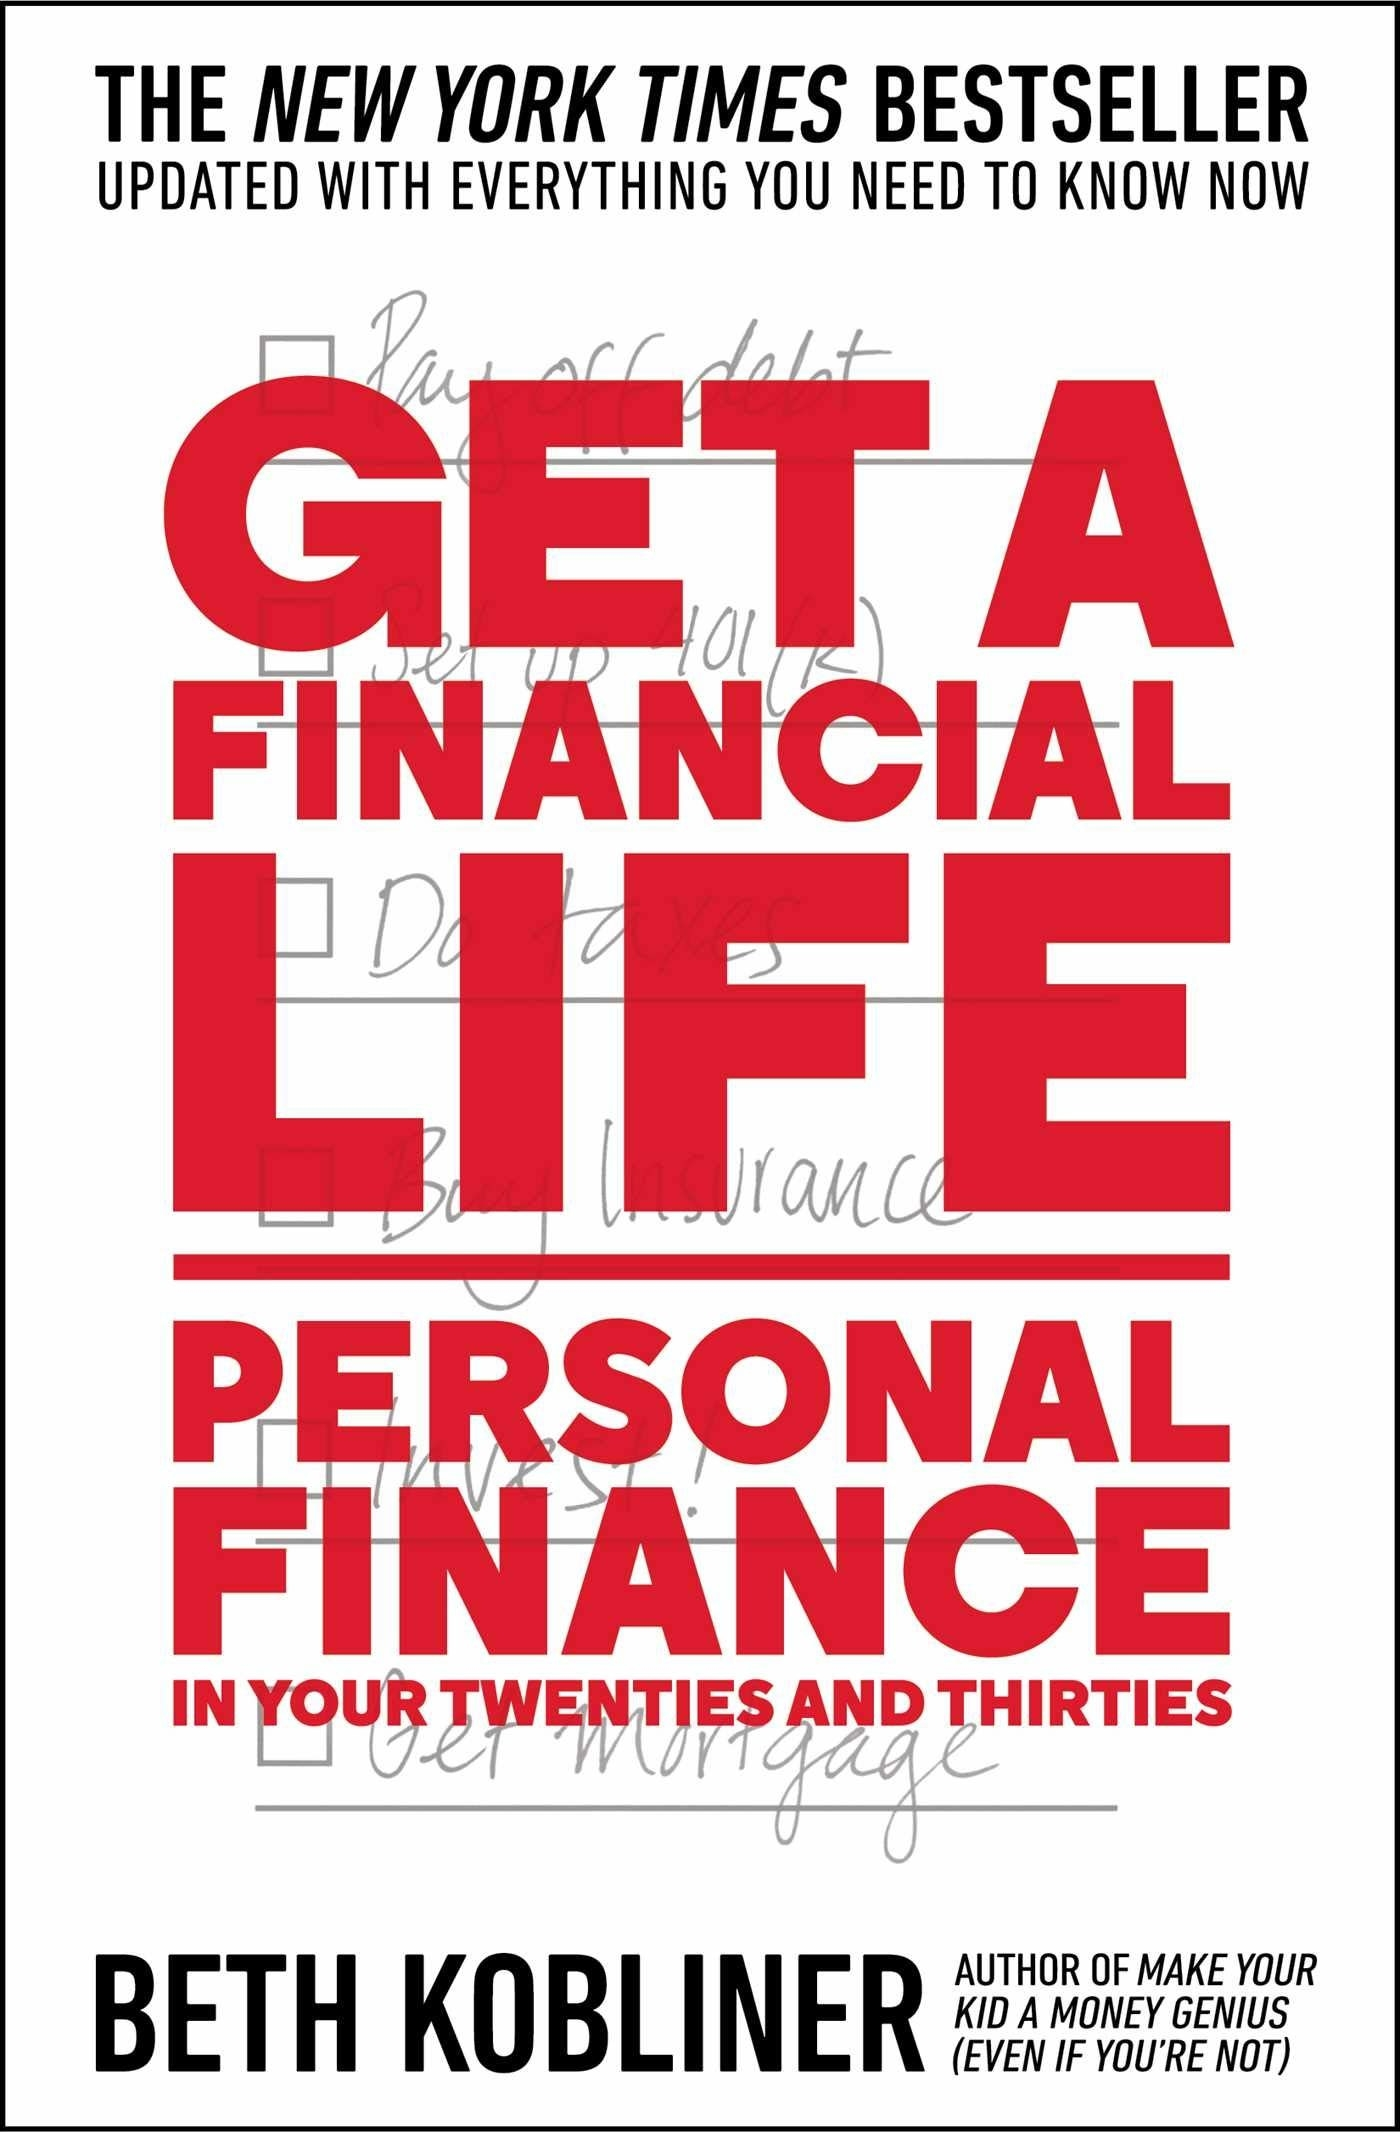 the cover of the personal finance book